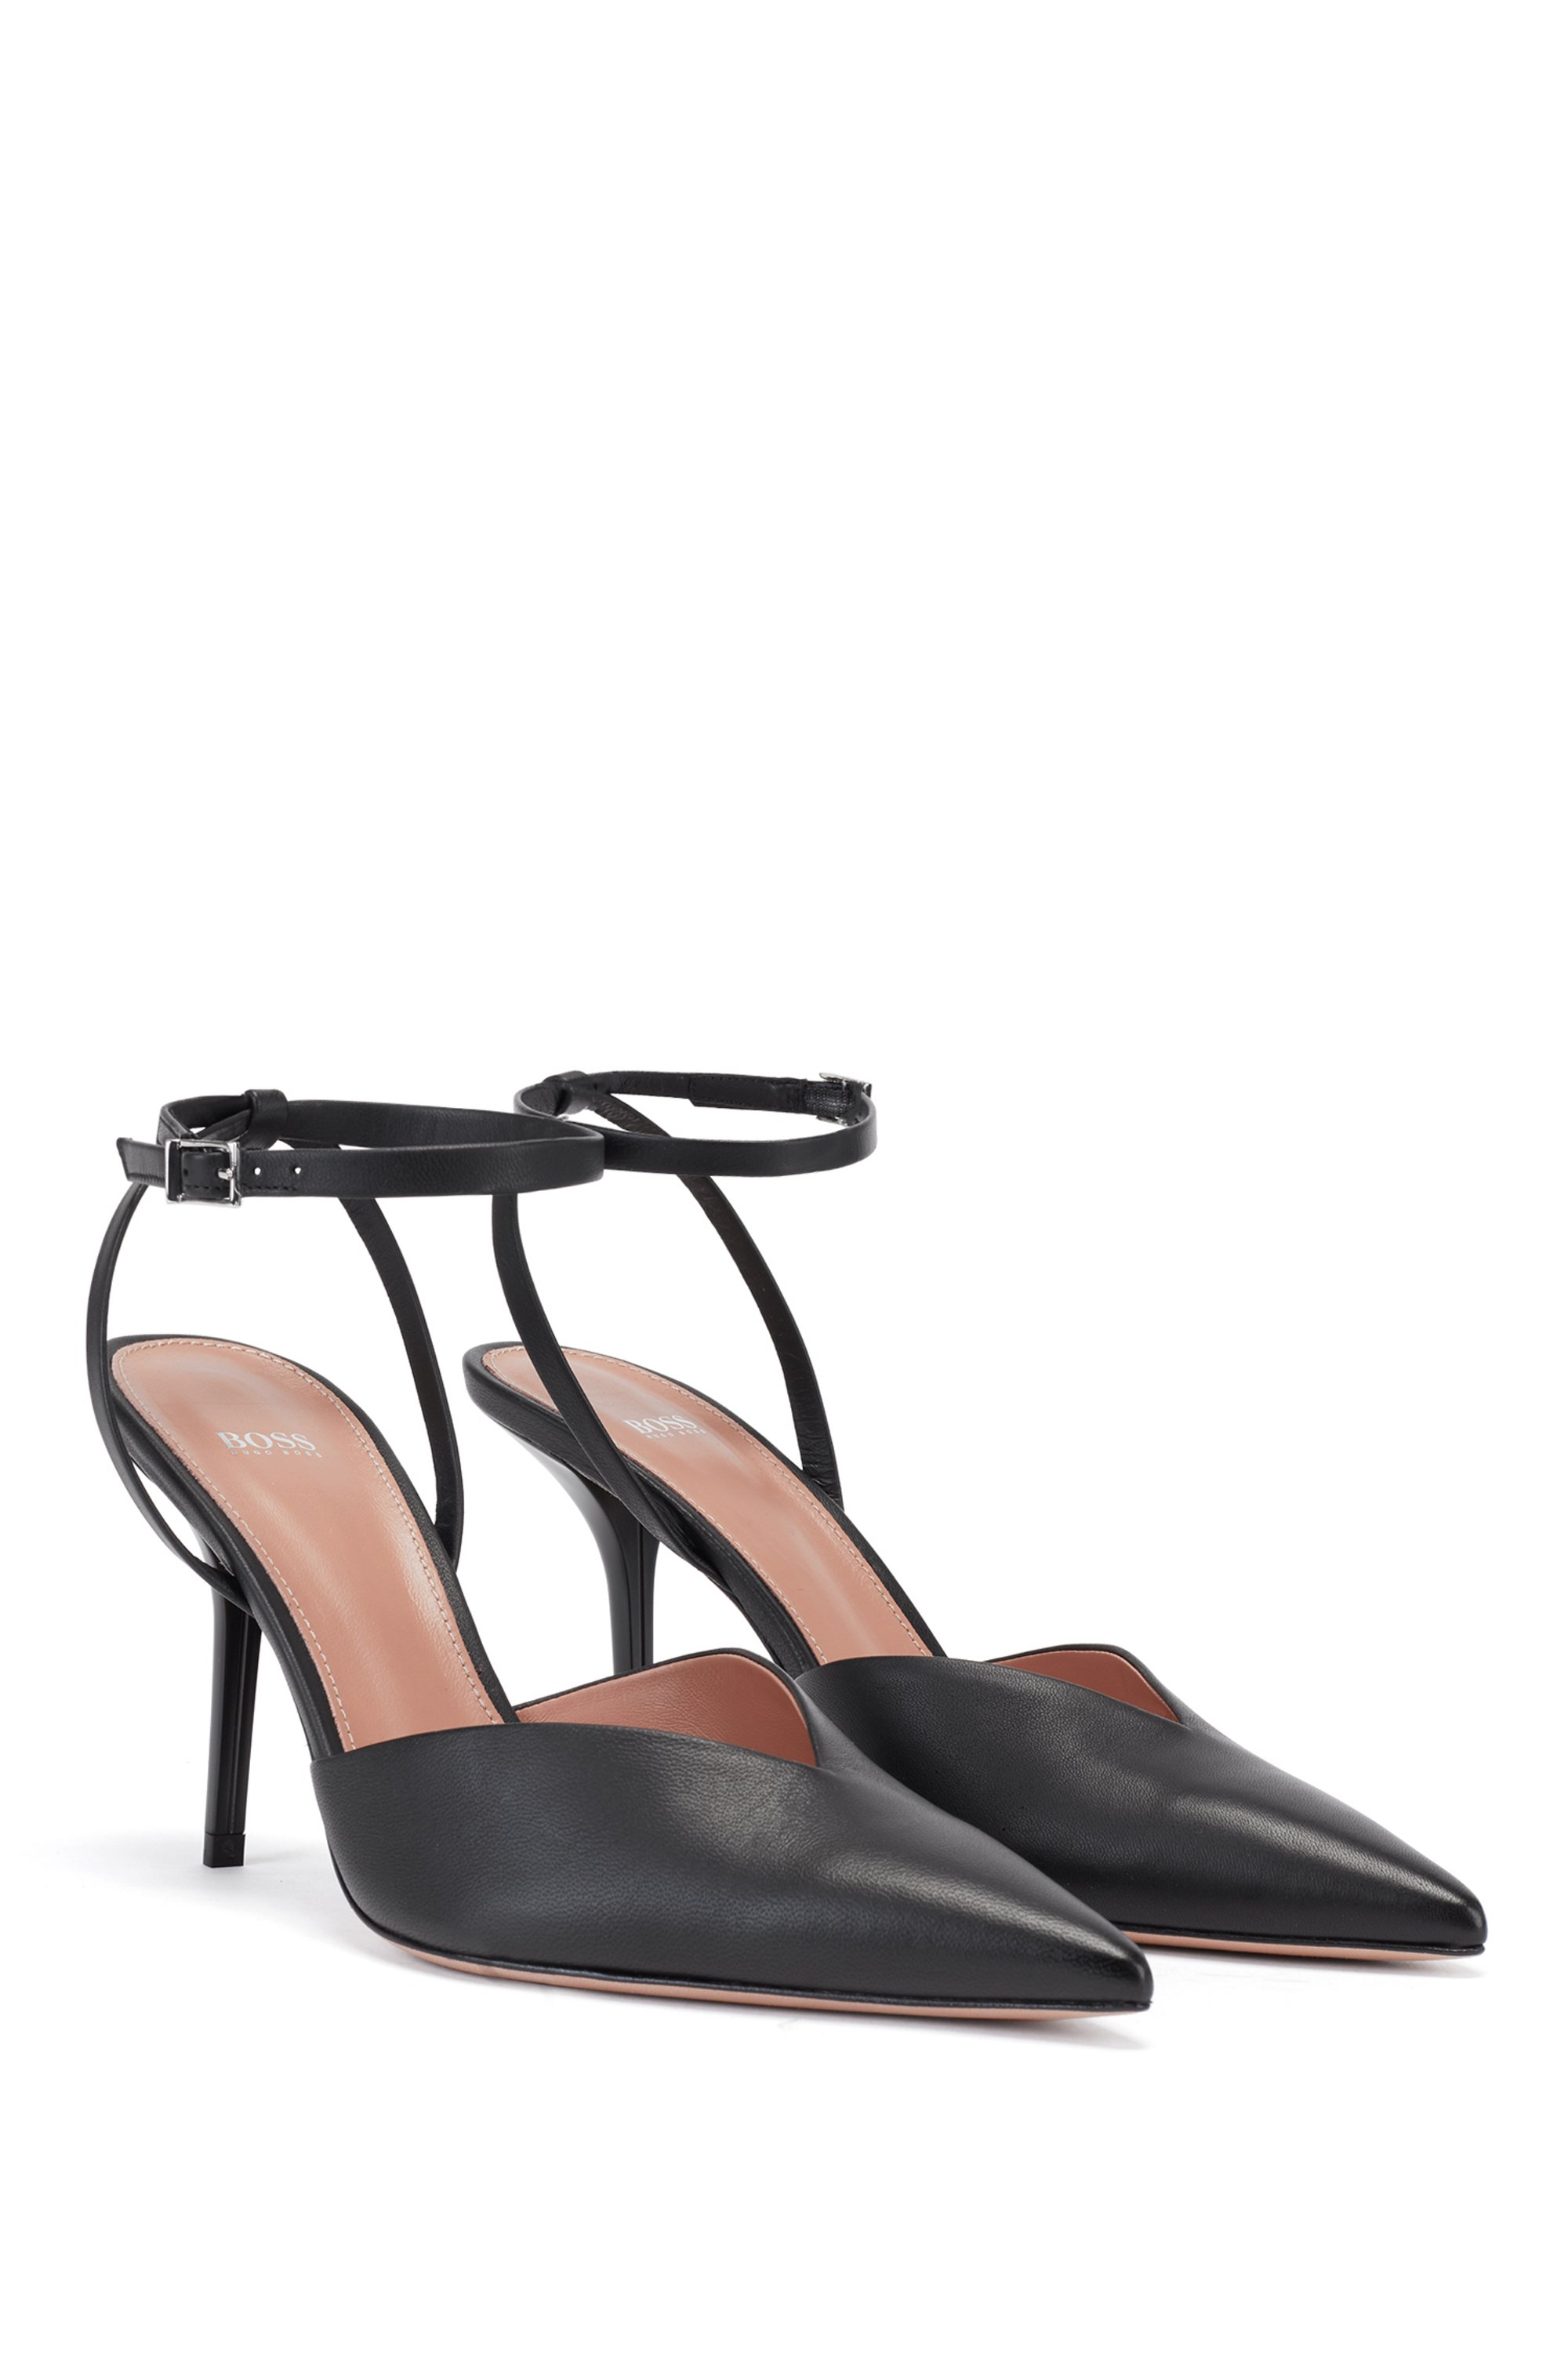 Slingback pumps in Italian leather with ankle strap